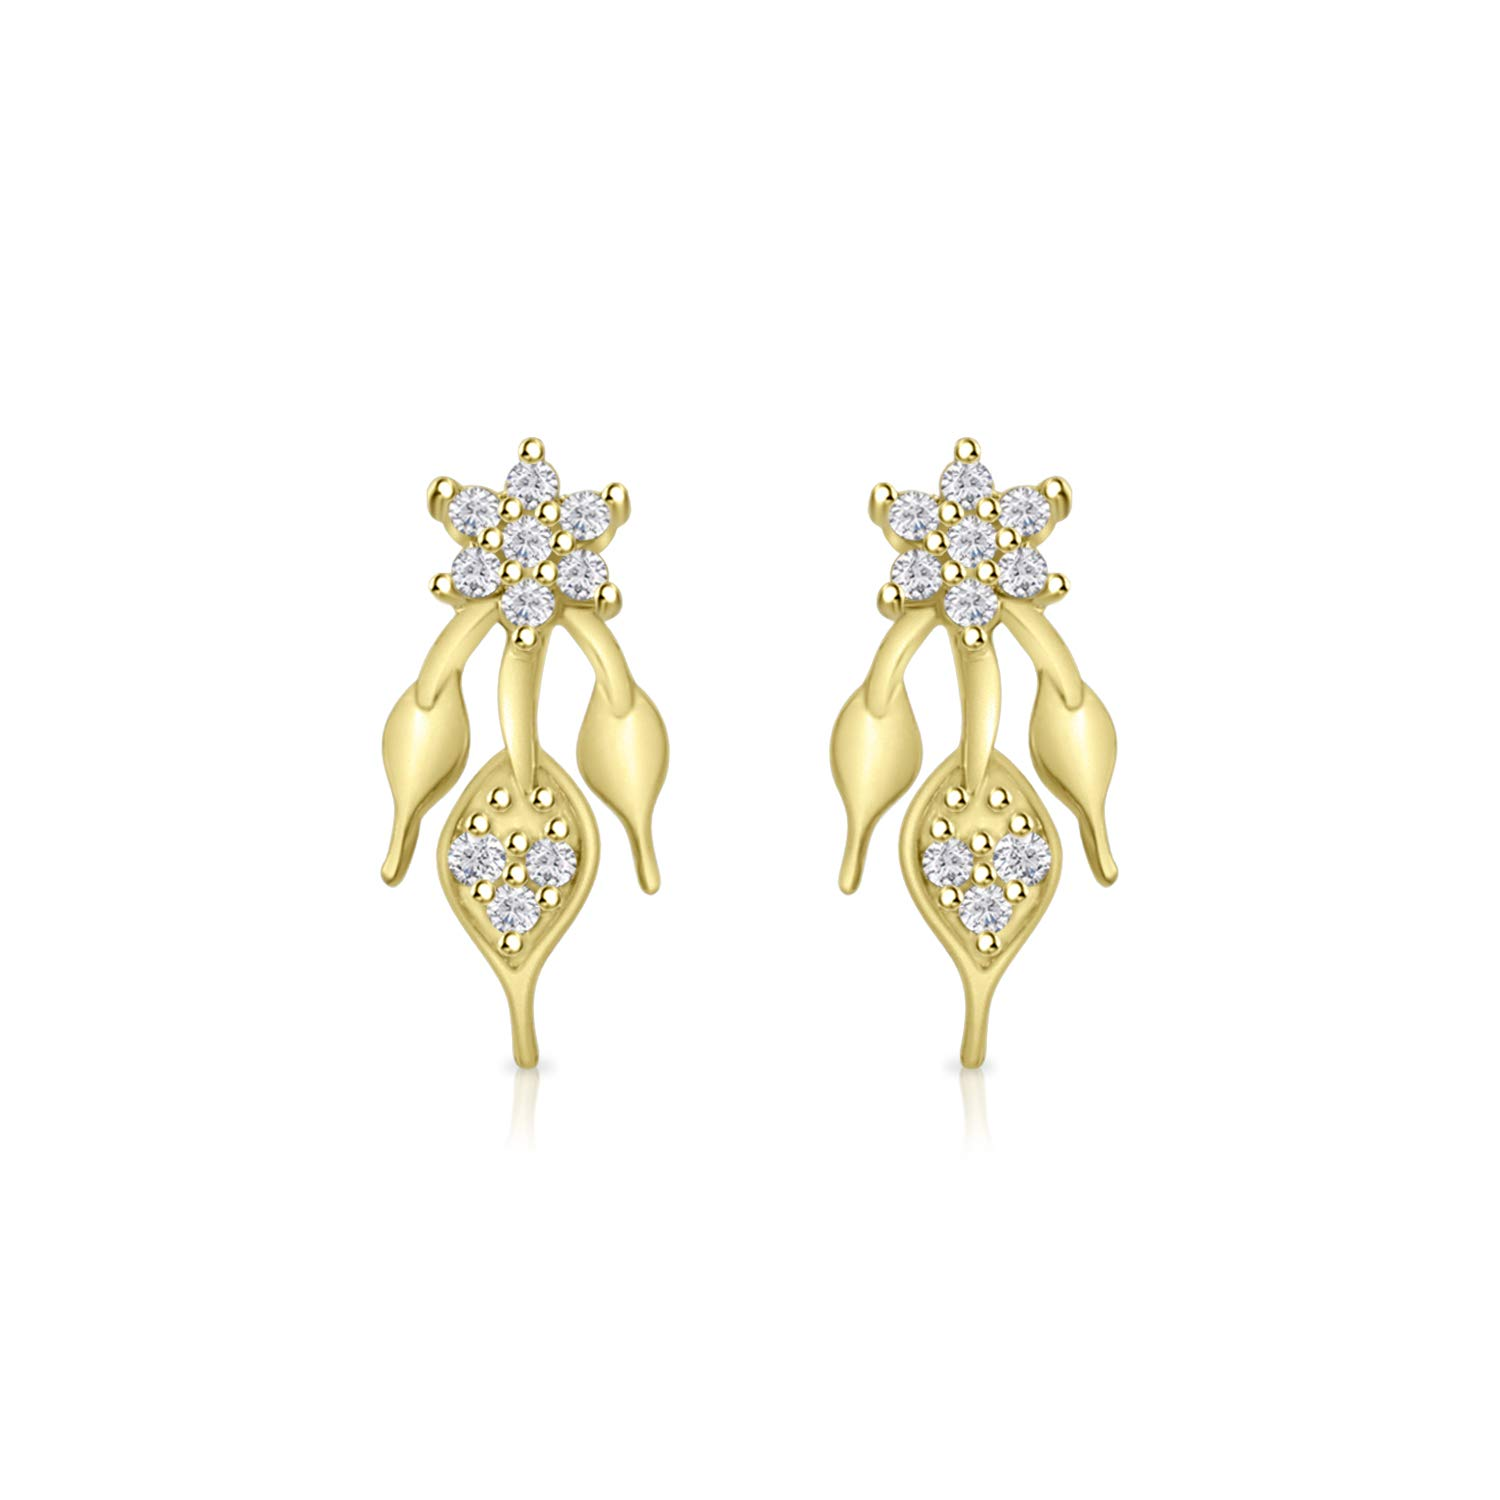 Silver Dew 14k White Gold//Yellow Gold Plated Over Flower Leaf Stud Earring For Womens Bridal Earrings For Girls